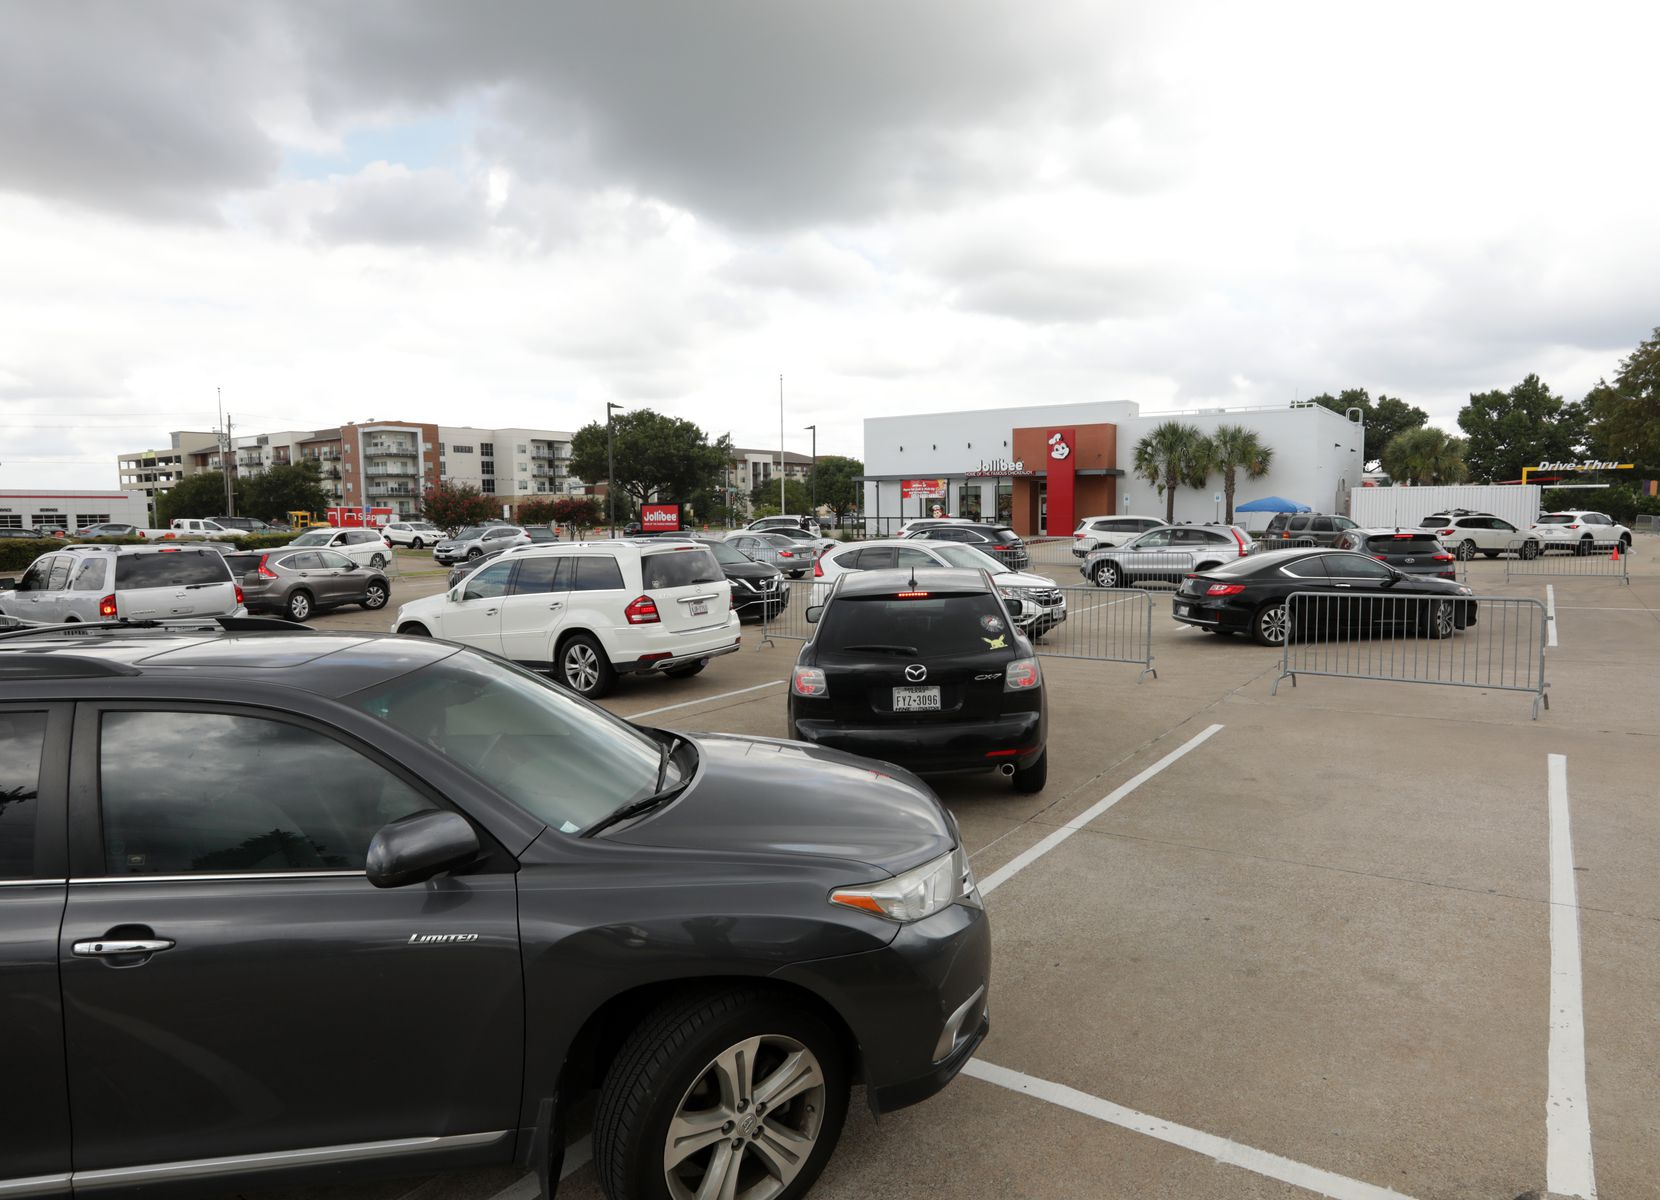 If Jollibee seems far away from this vantage point, it is: The end of the line snakes through part of the parking lot at Calloway's Nursery, then spills out onto Preston Road at peak hours.